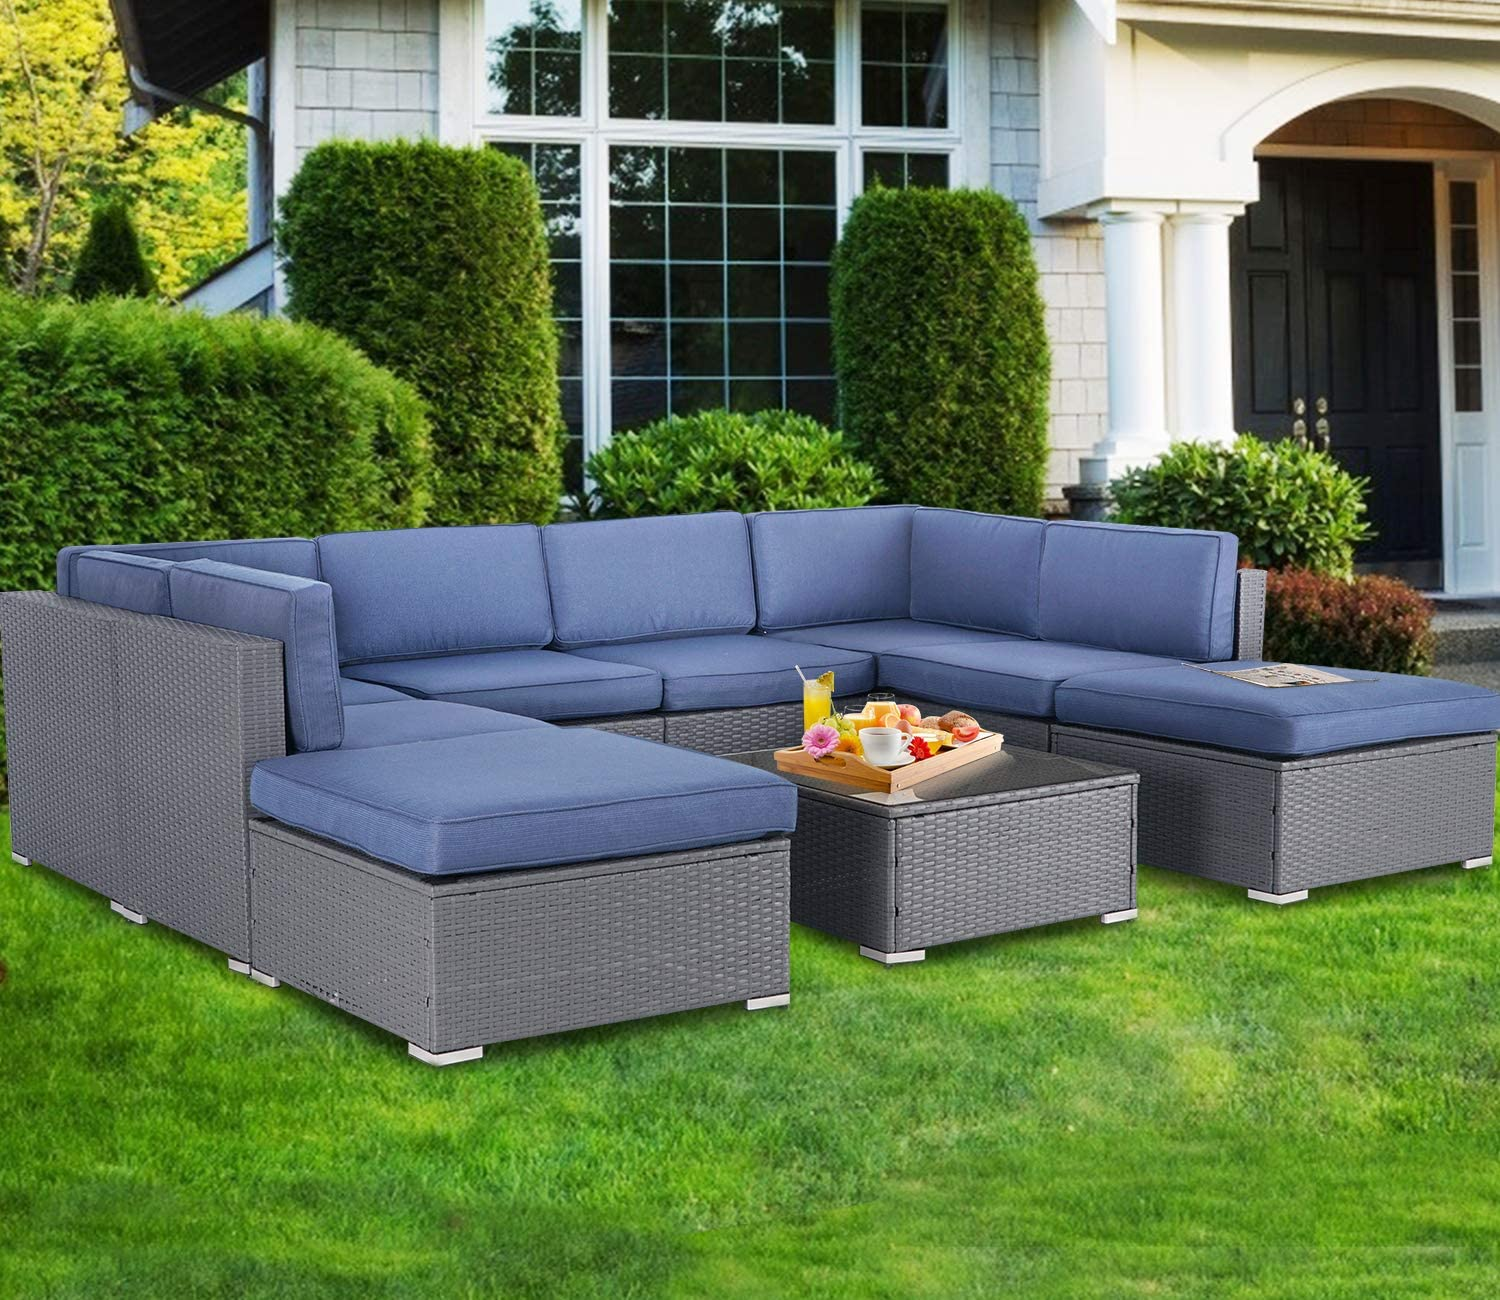 suncrown outdoor furniture 9 piece patio sofa modular sectional gray wicker conversation set with ottoman coffee table navy blue